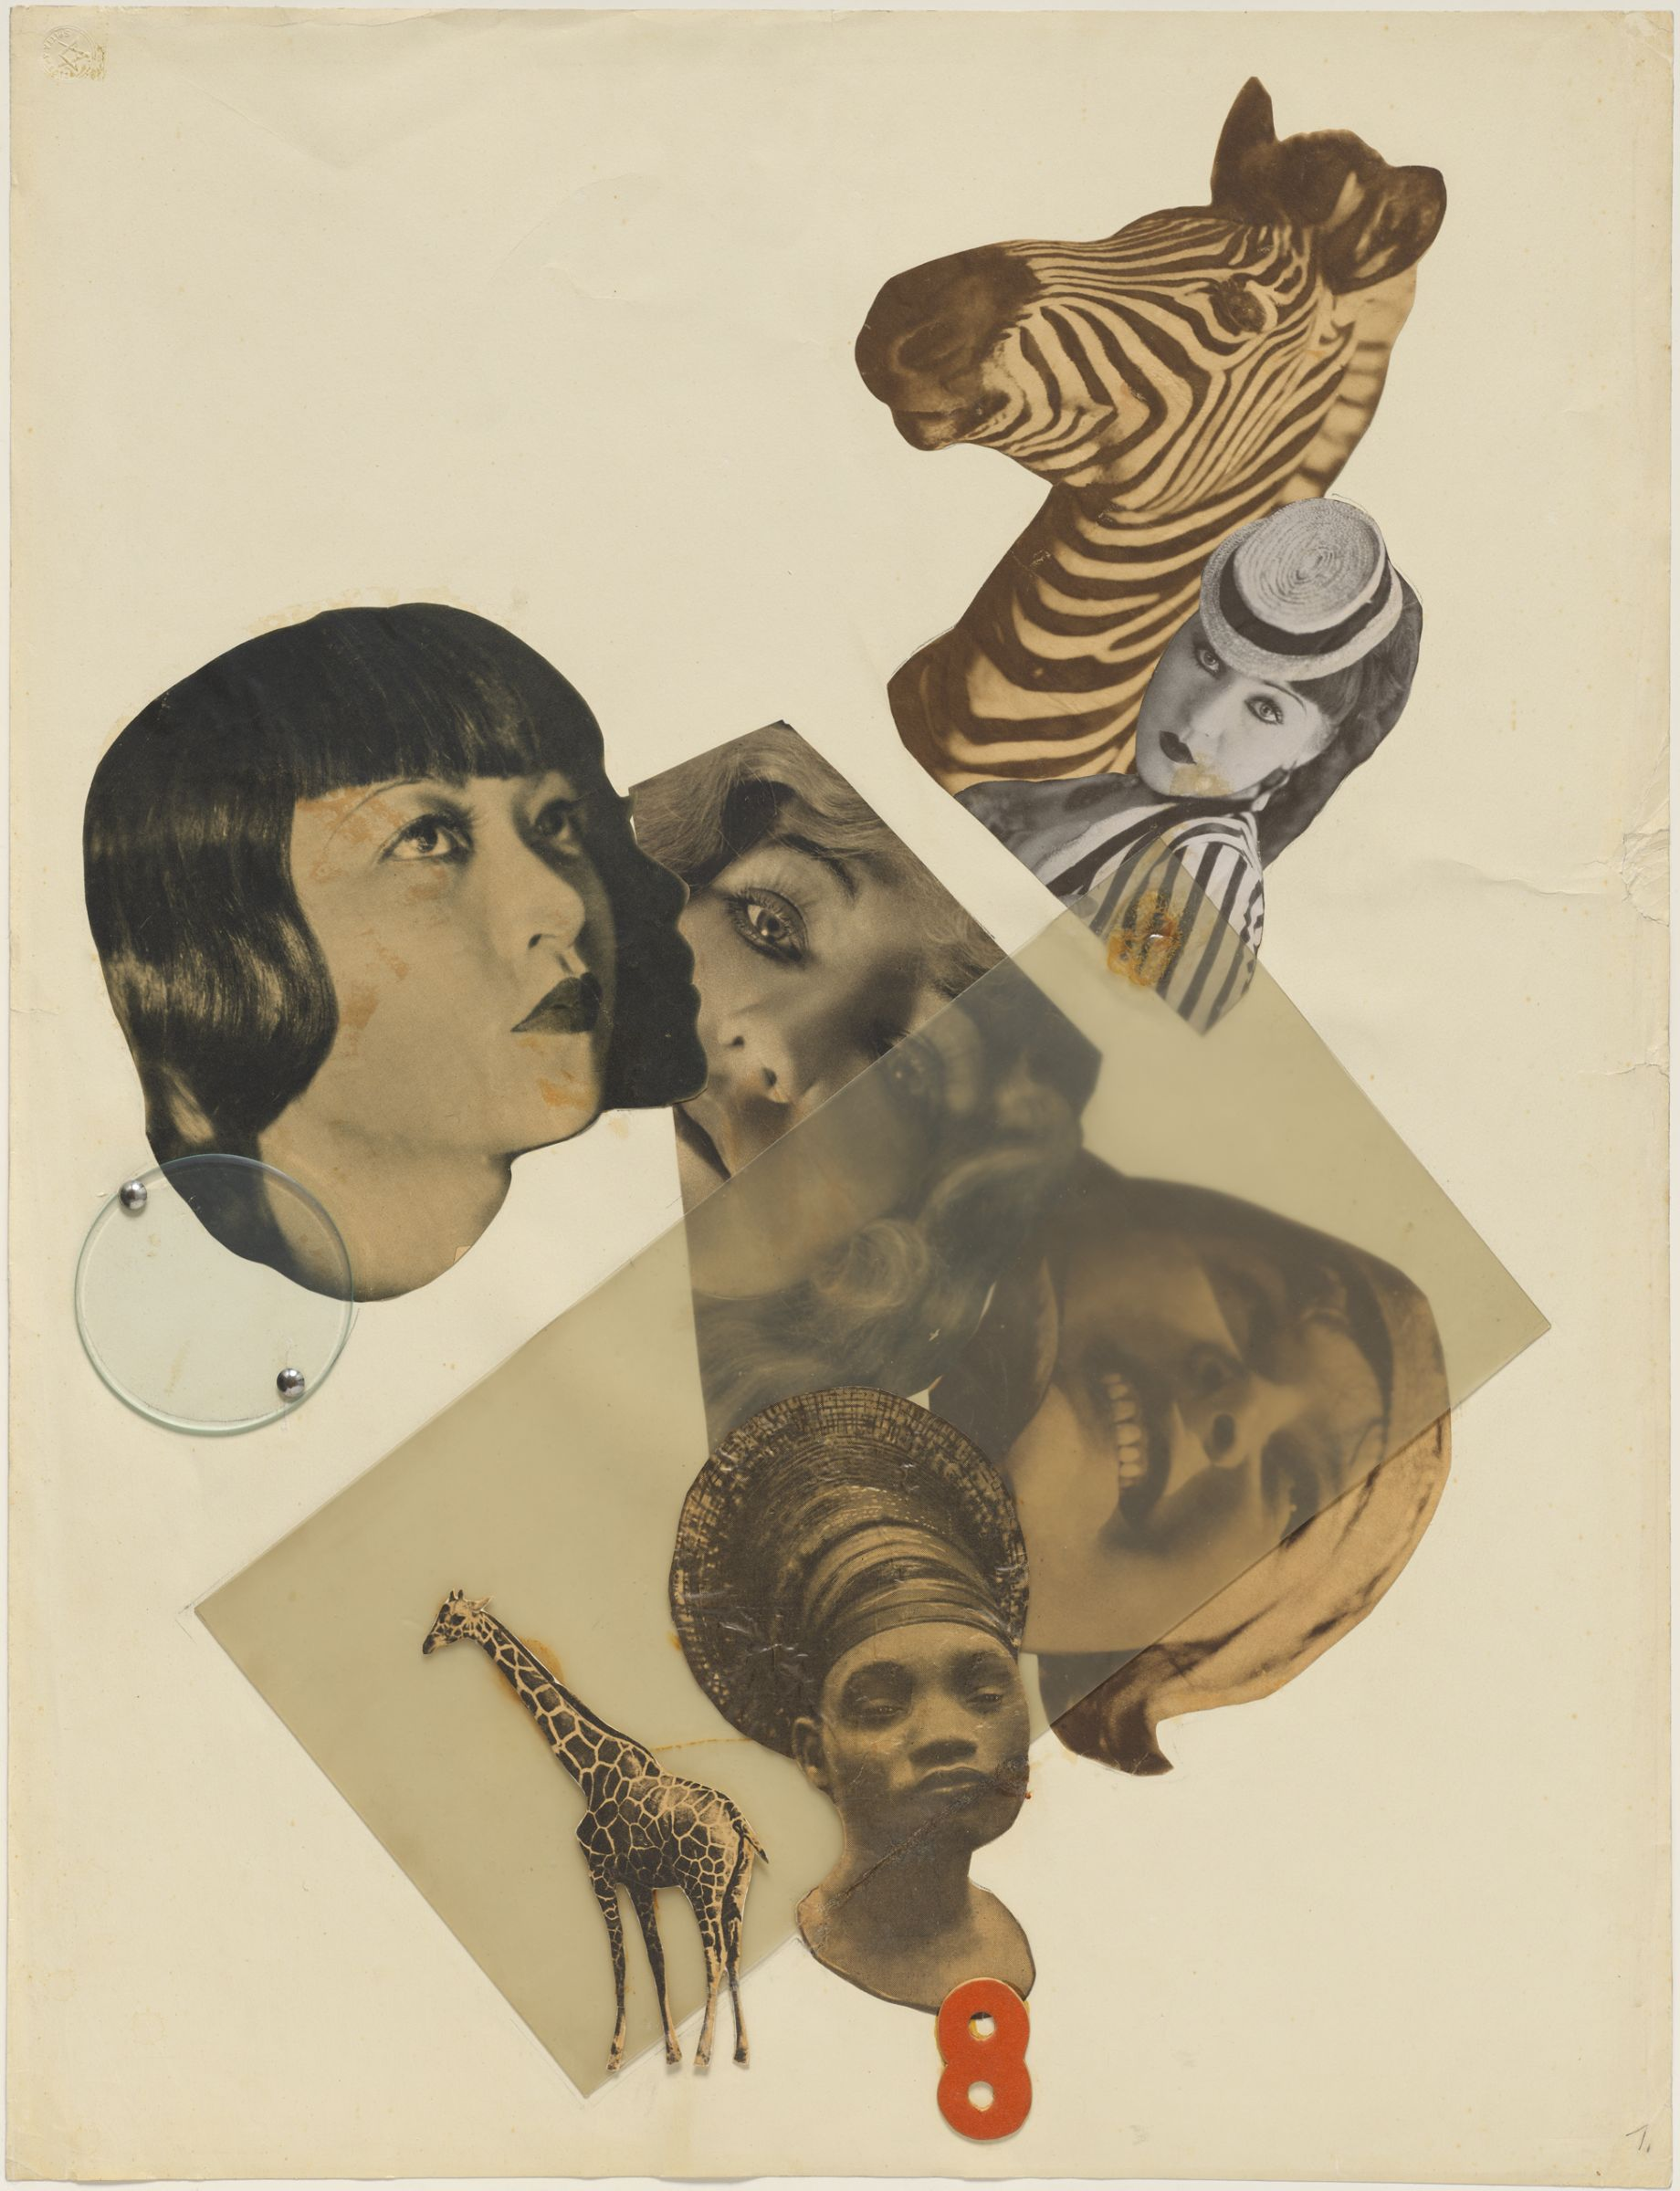 Marianne Brandt, Untitled [with Anne May Wong], 1929. Photomontage with cellulose acetate. Harvard Art Museums/Busch-Reisinger Museum, Purchase through the generosity of the Friends of the Busch-Reisinger Museum and their Acquisitions Committee, Richard and Priscilla Hunt, Elizabeth C. Lyman, Mildred Rendl-Marcus, and Sylvia de Cuevas, 2006.25. © Artists Rights Society (ARS), New York.